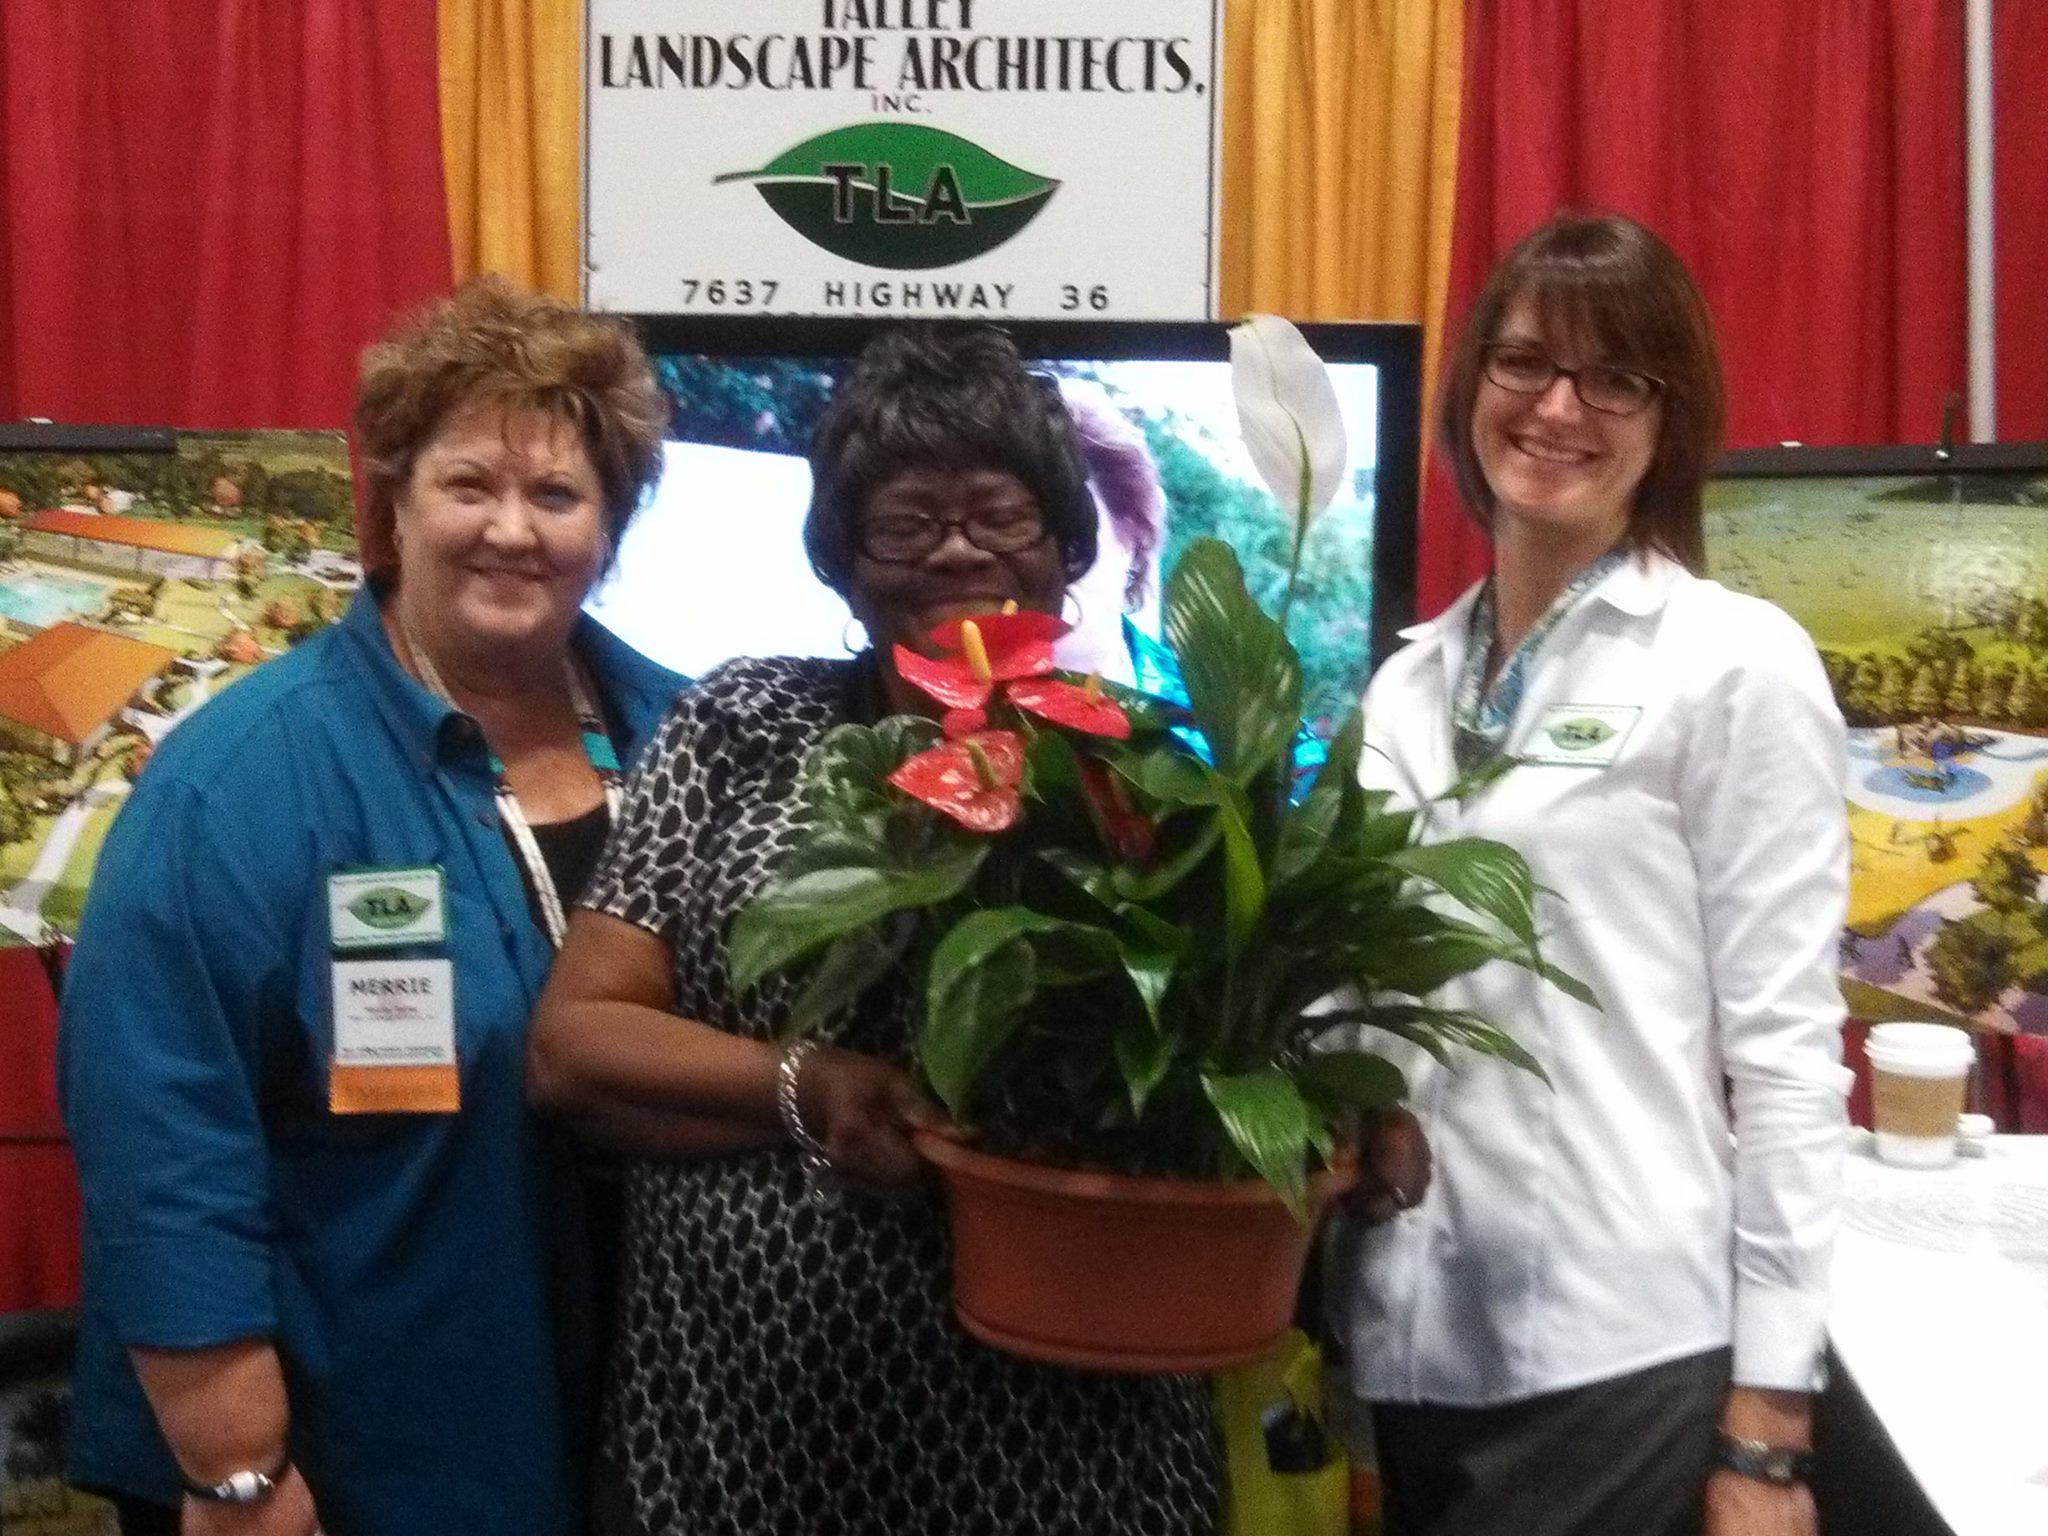 - Talley Landscape Architects, Inc. had a successful 2014 Association of Water Board Directors Conference in Fort Worth, Texas. Glad to see many familiar faces and two lucky winners went home with beautiful plants.